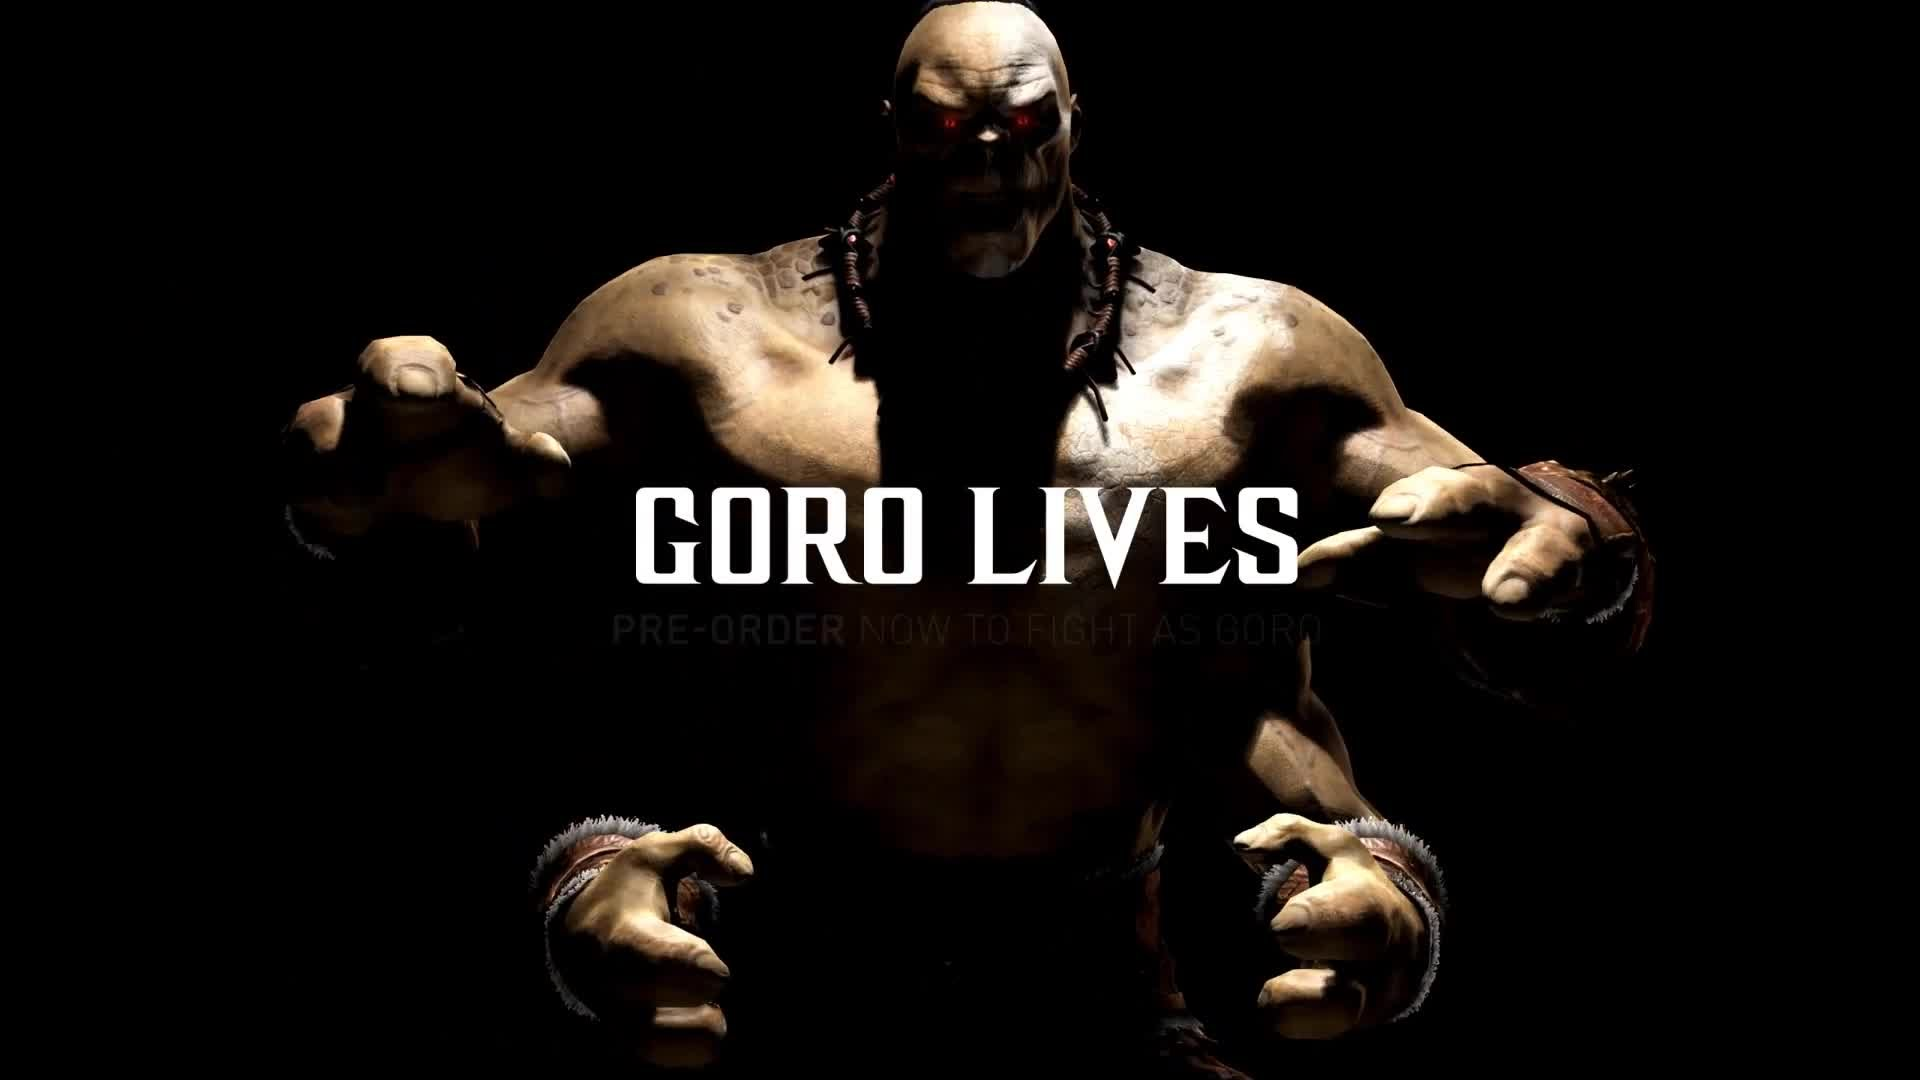 Goro Smashes Heads Into Shoulders In This New Mortal Kombat X